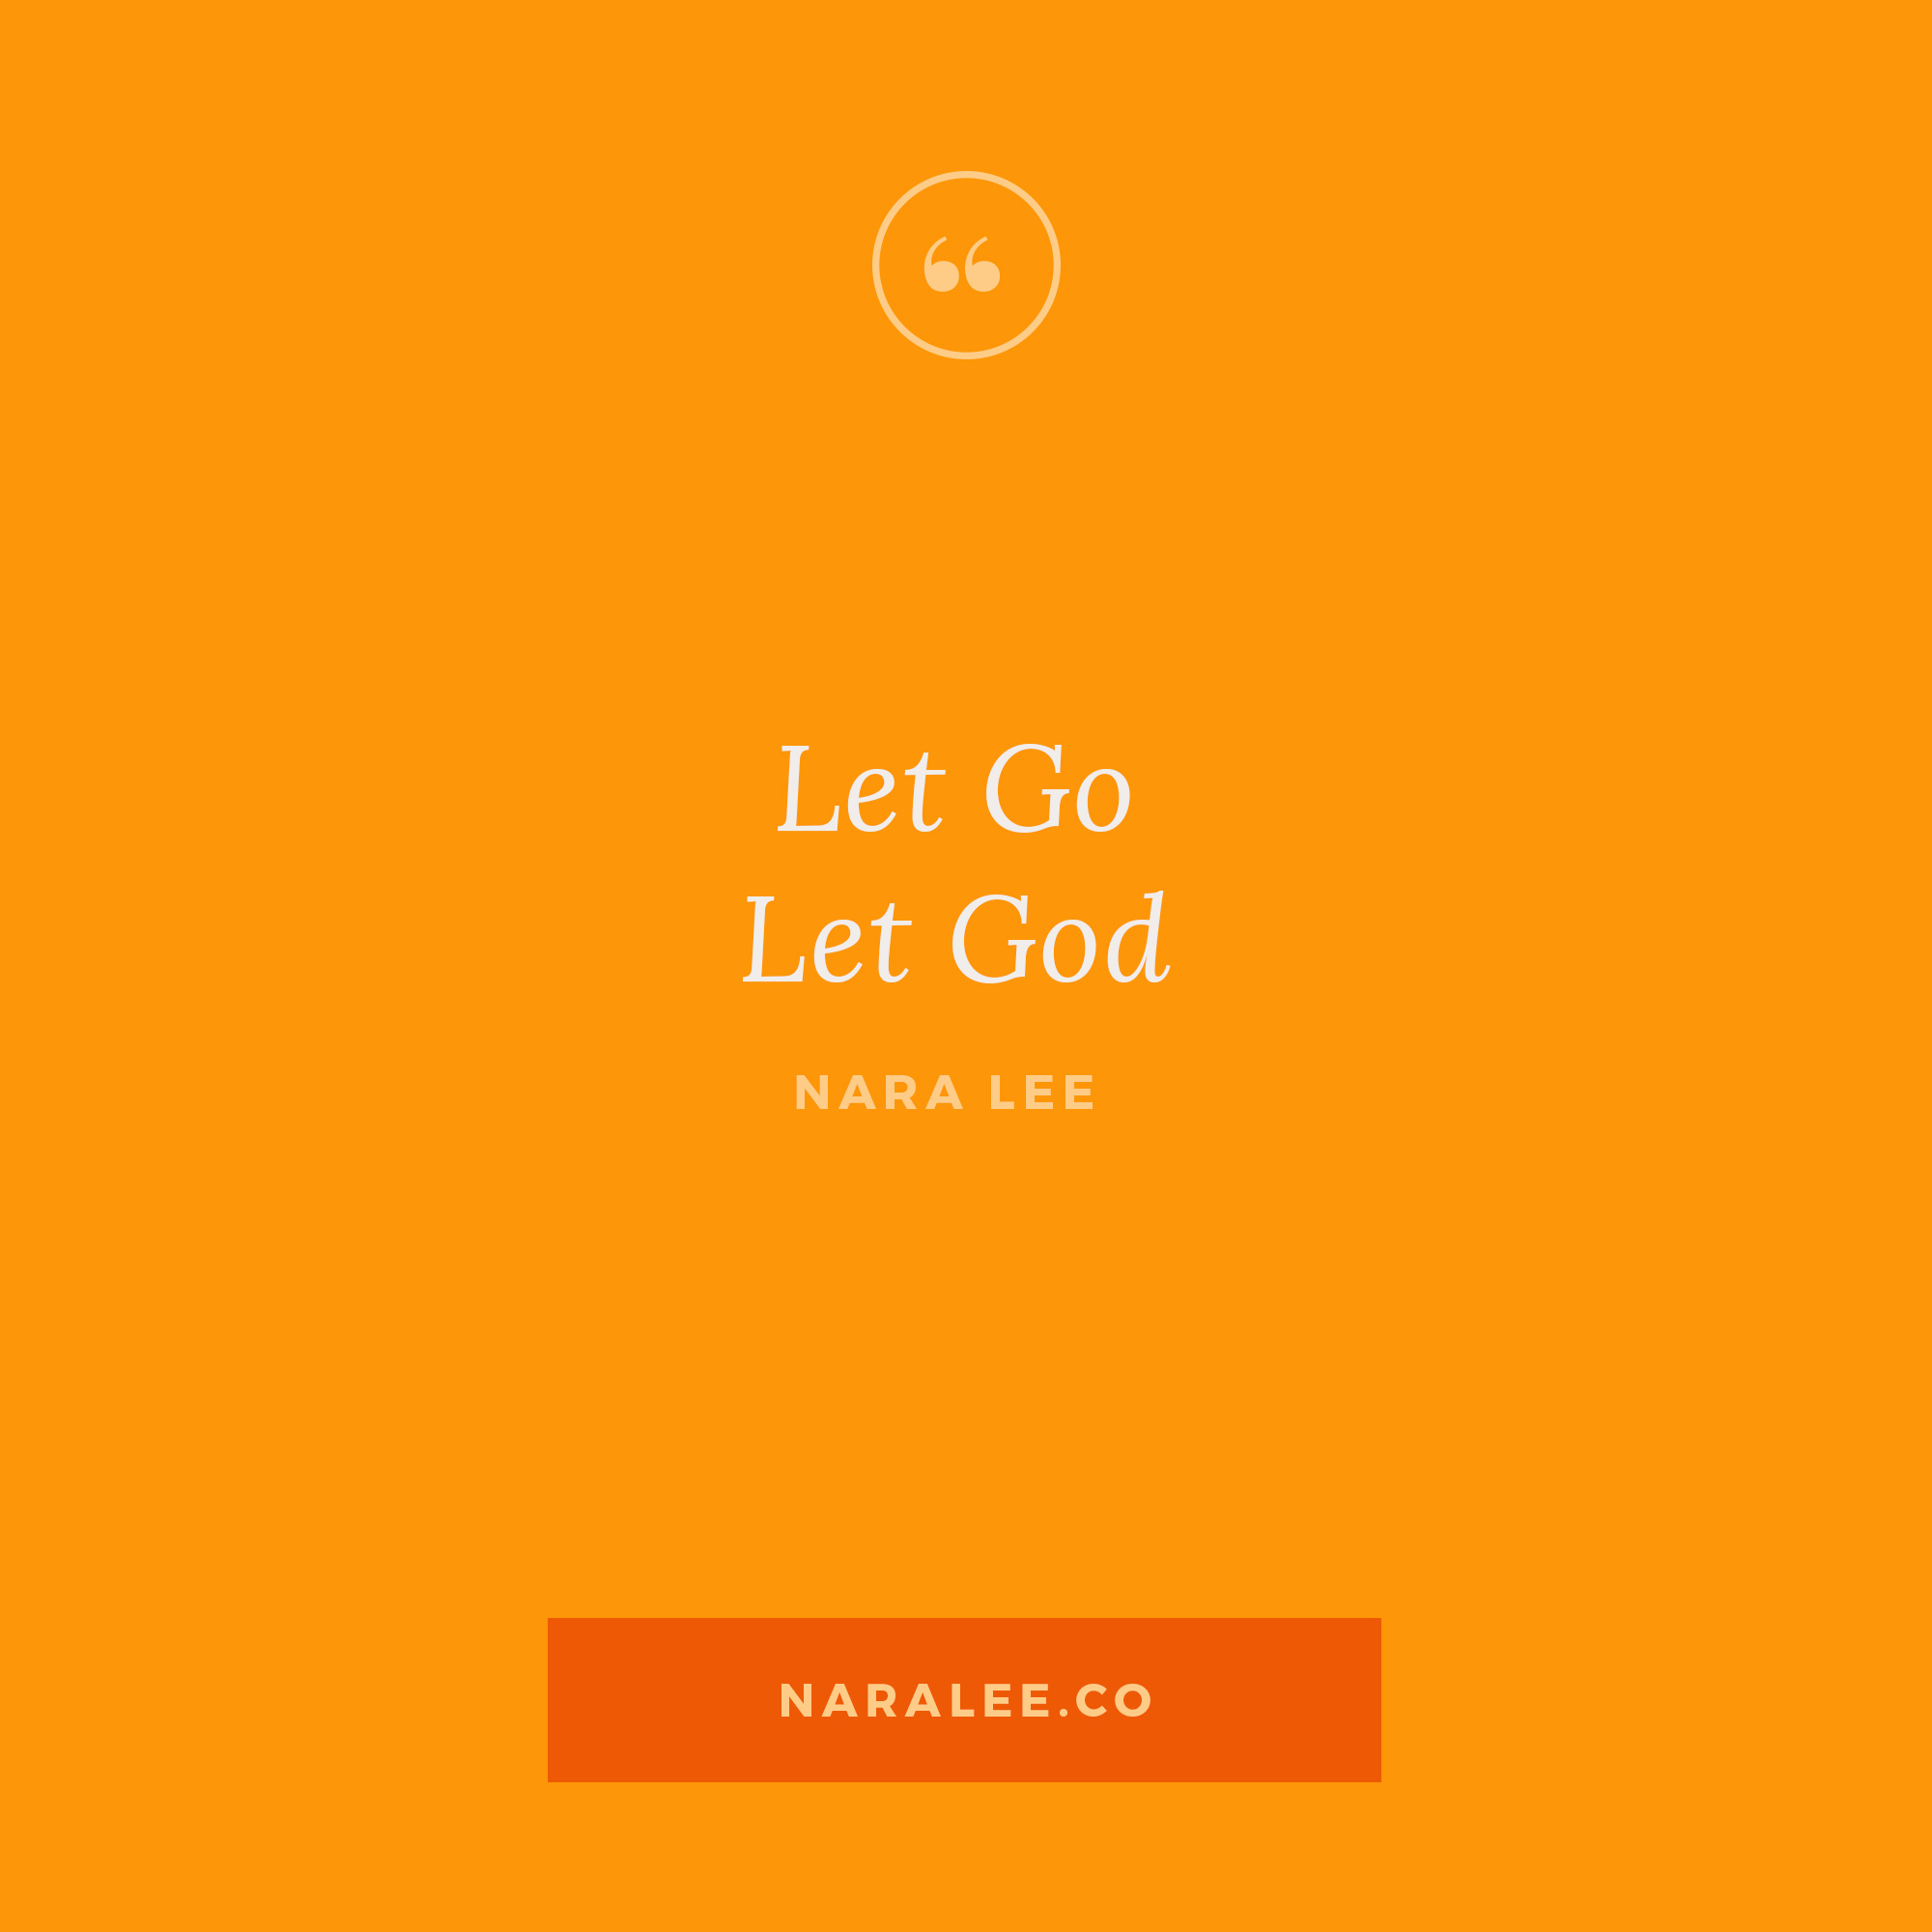 [Rising-Strong-Quotes] Nara Lee Quotes - Let Go, Let God-2.jpg